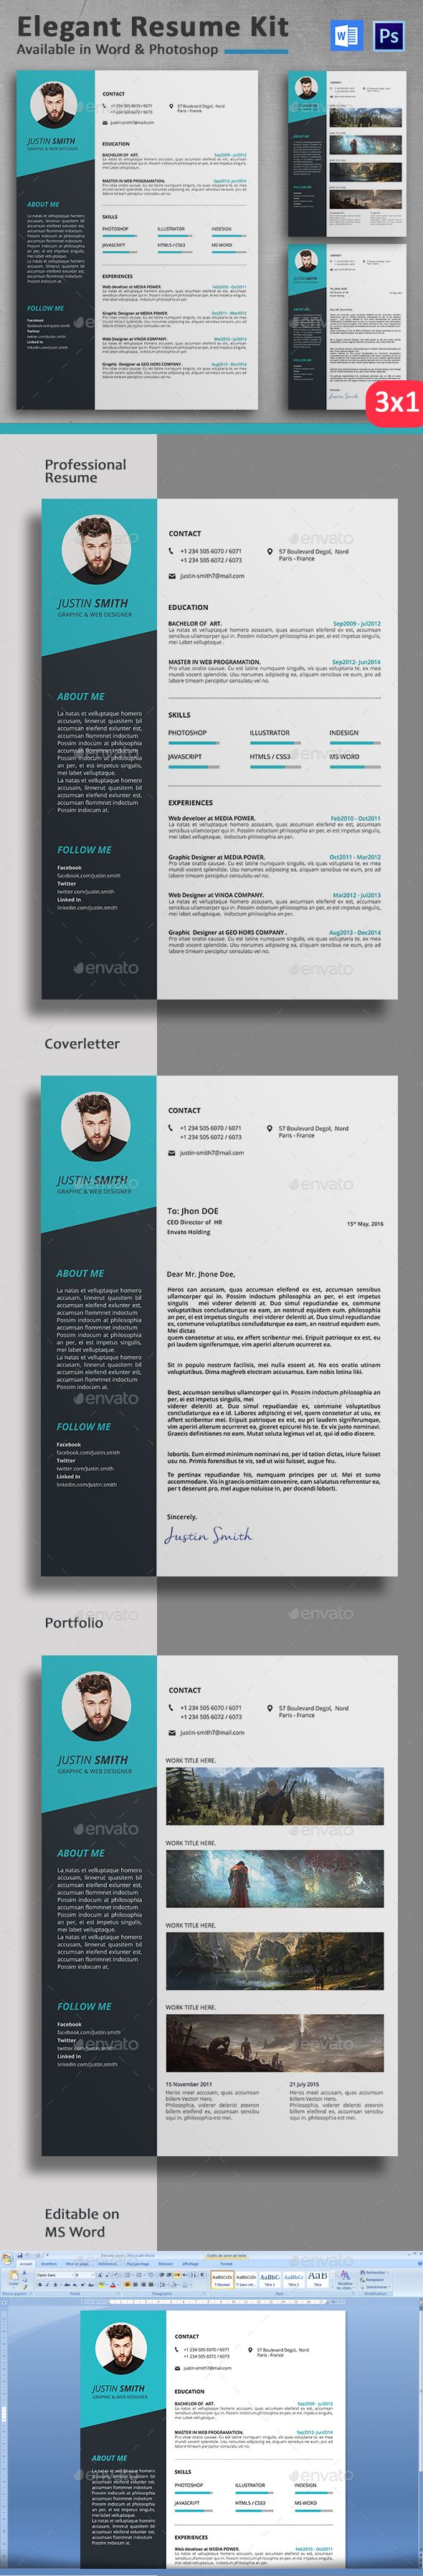 resume professional cv cv template and ux design clean and professional resume designed in photoshop cs and so easy to edit and make it your own resume include resume cover letter and portfolio